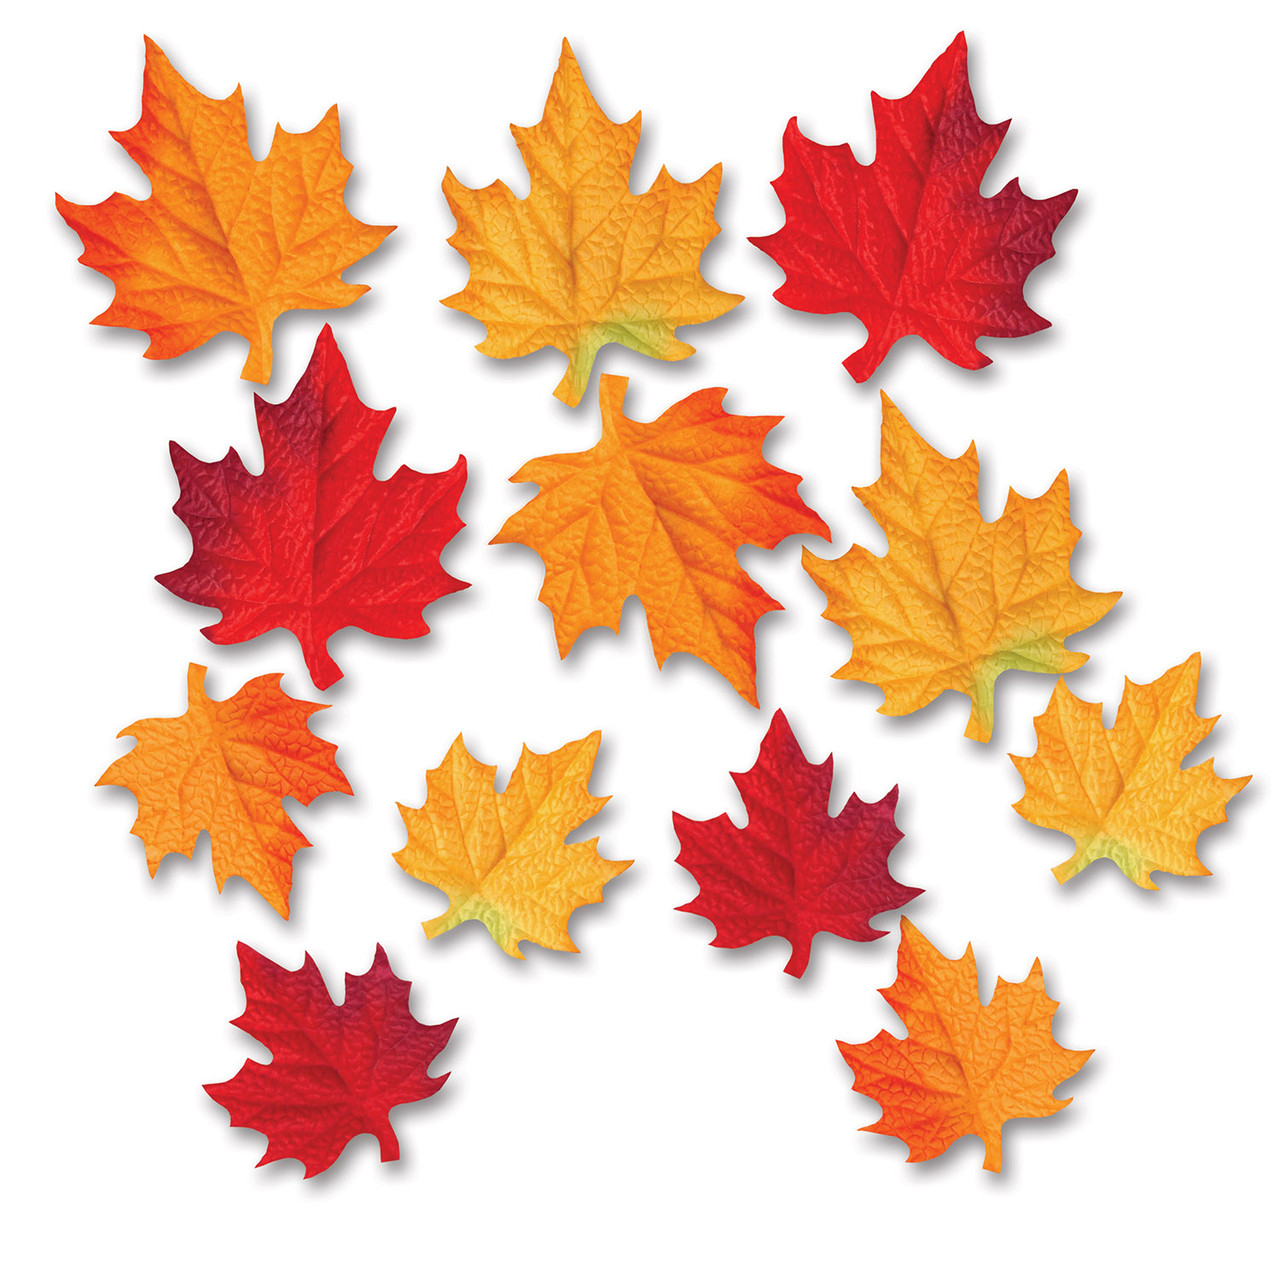 - Club Pack Of 288 Red & Yellow Fabric Autumn Leaf Silhouette Cutout